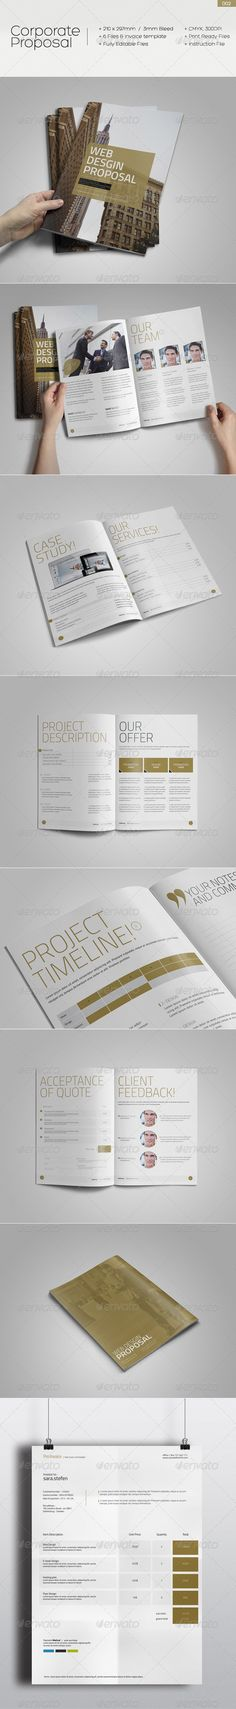 Proposal Template Fonts, Timeline and Stationery - best proposal templates